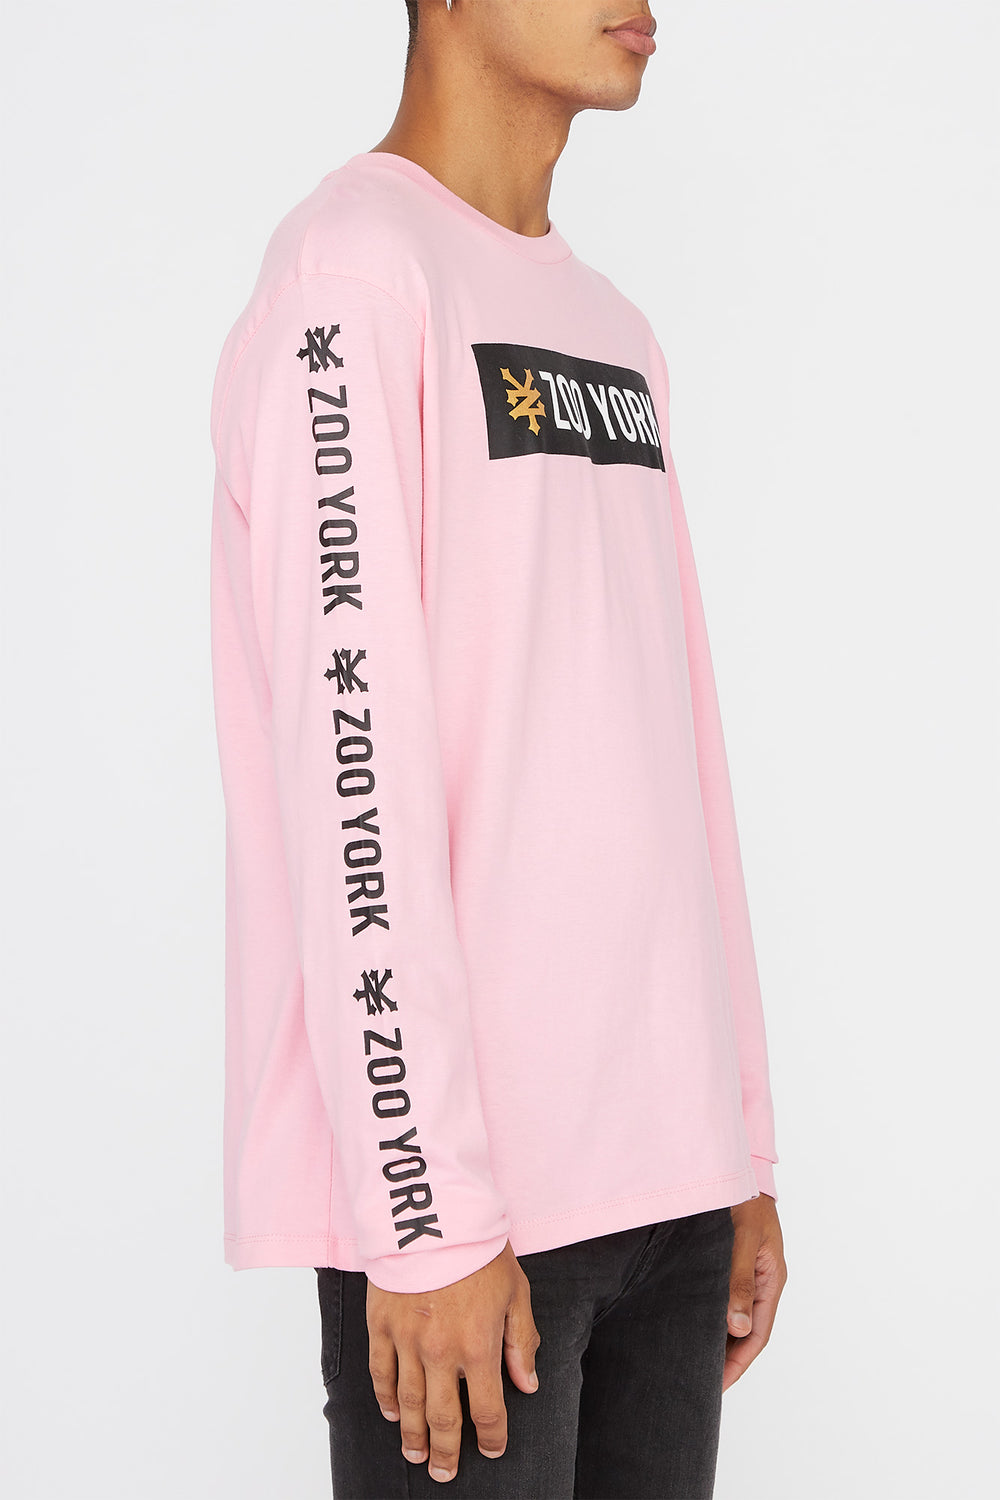 Zoo York Mens Classic Logo Long Sleeve Shirt Pink